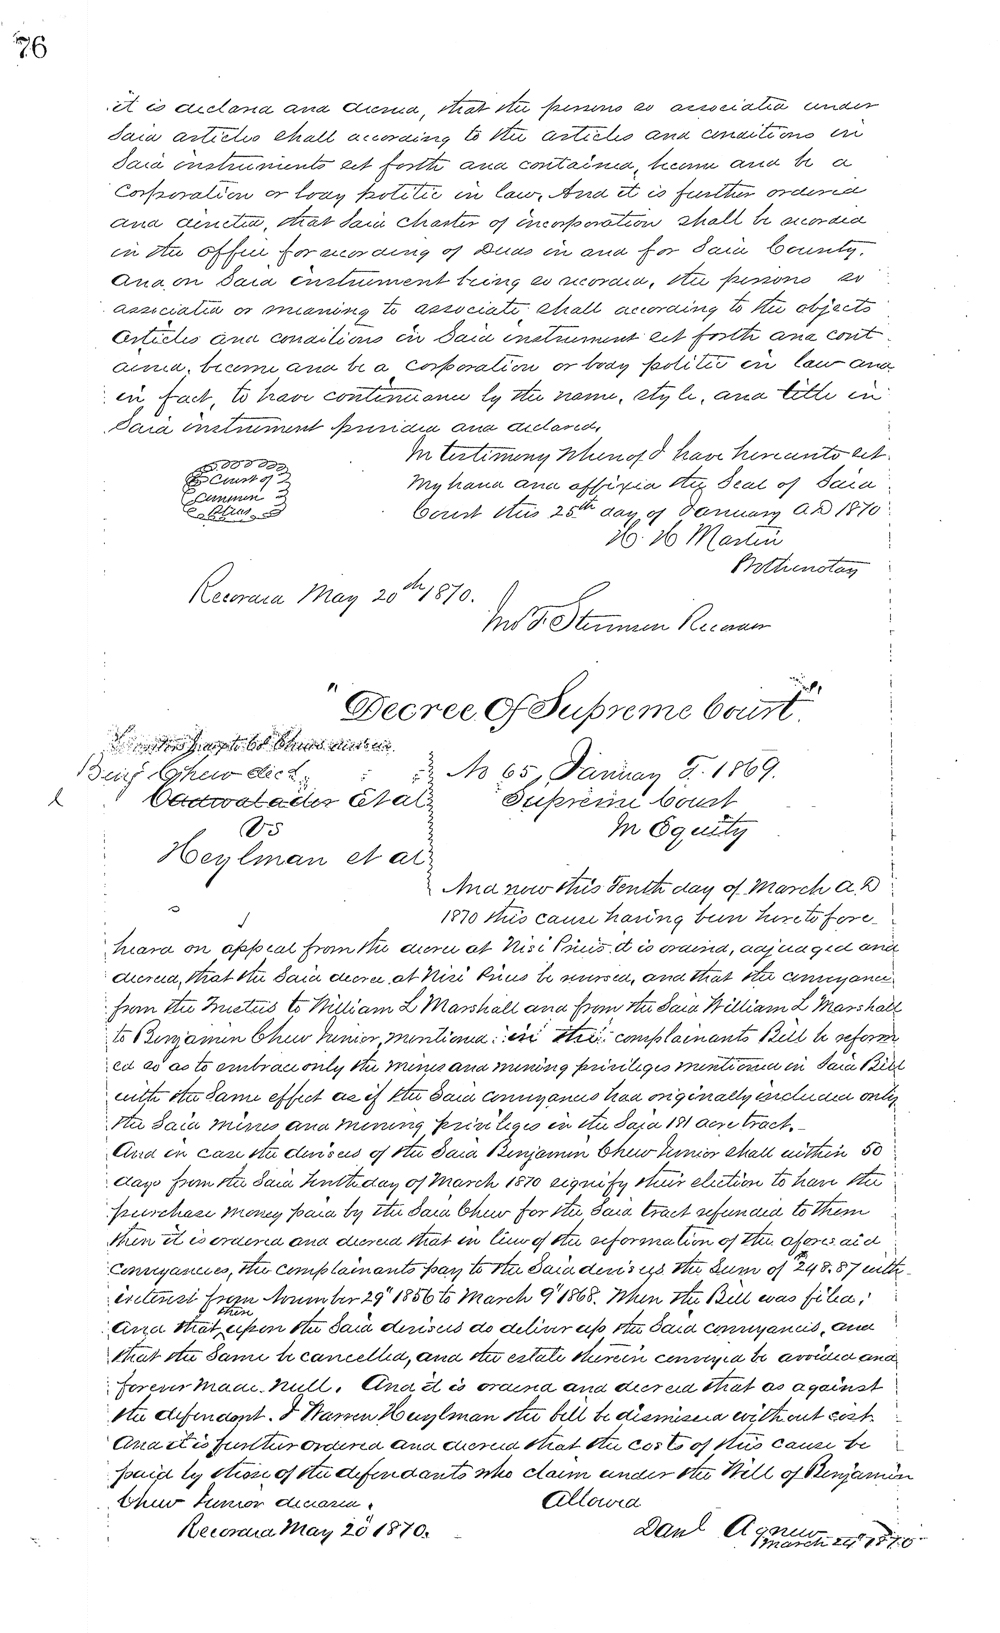 Charter page 4